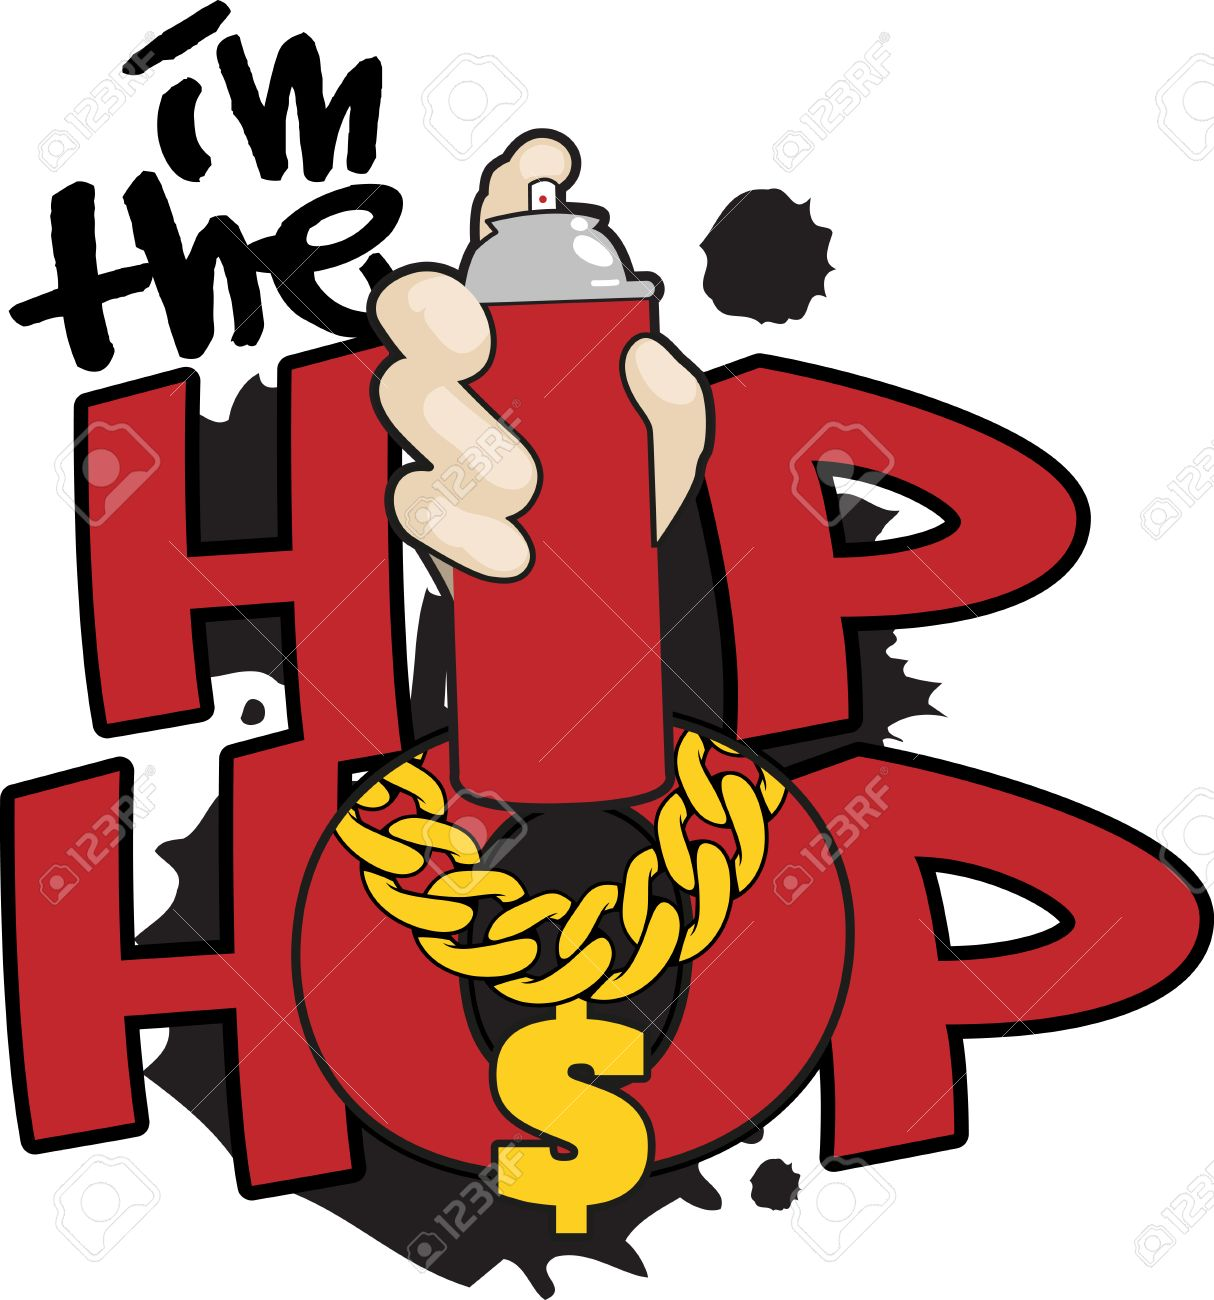 Hip Hop Words And Symbols For Music Fans Royalty Free Cliparts Vectors And Stock Illustration Image 42407917